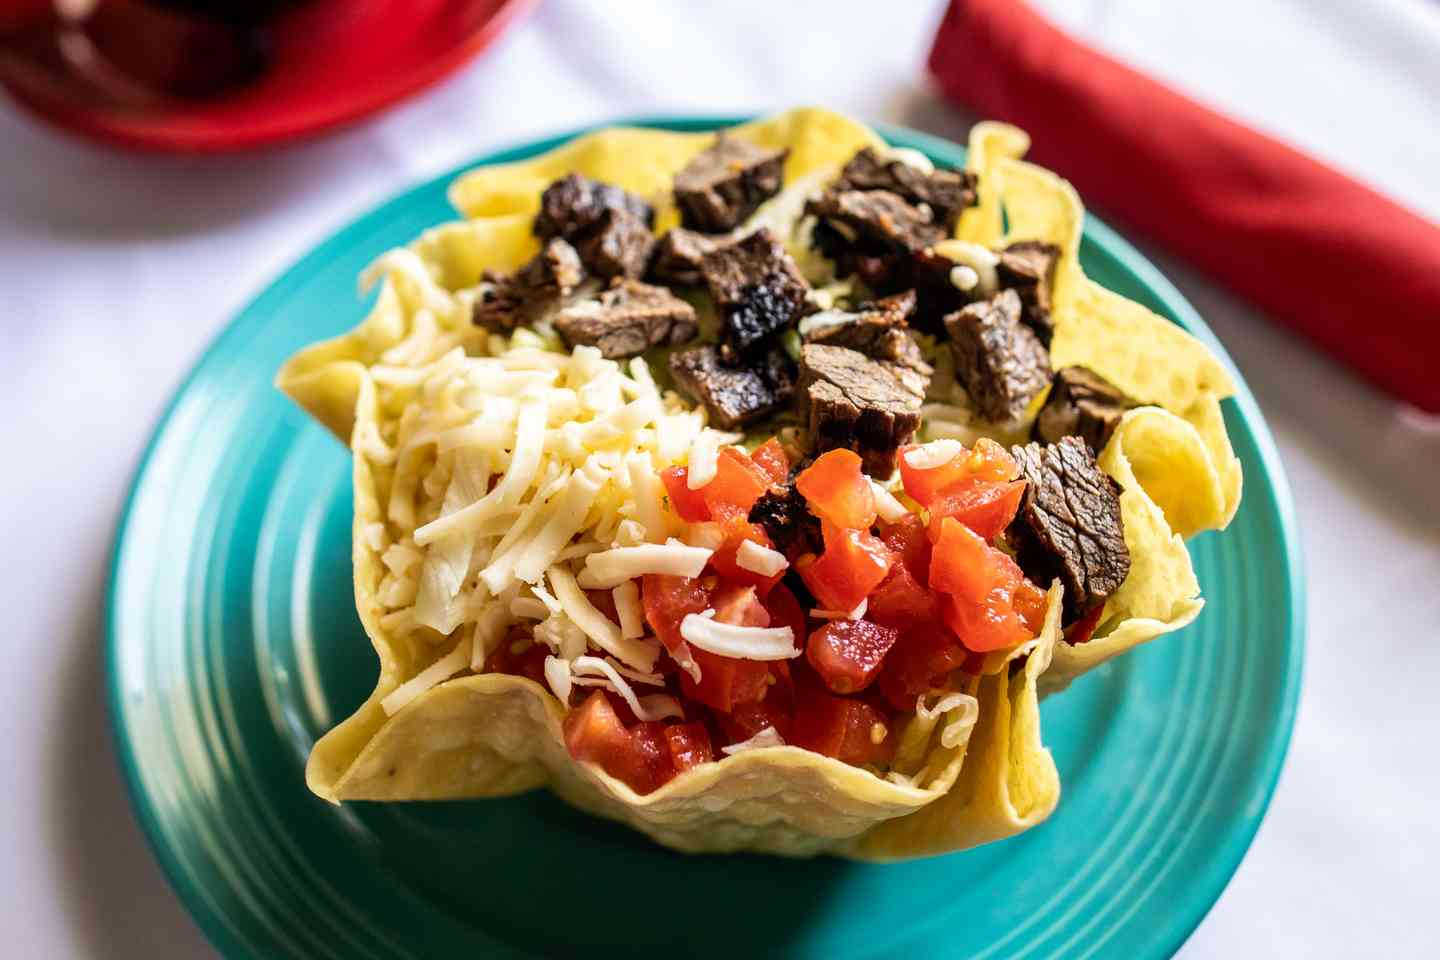 Taco Salad: Chicken or Beef